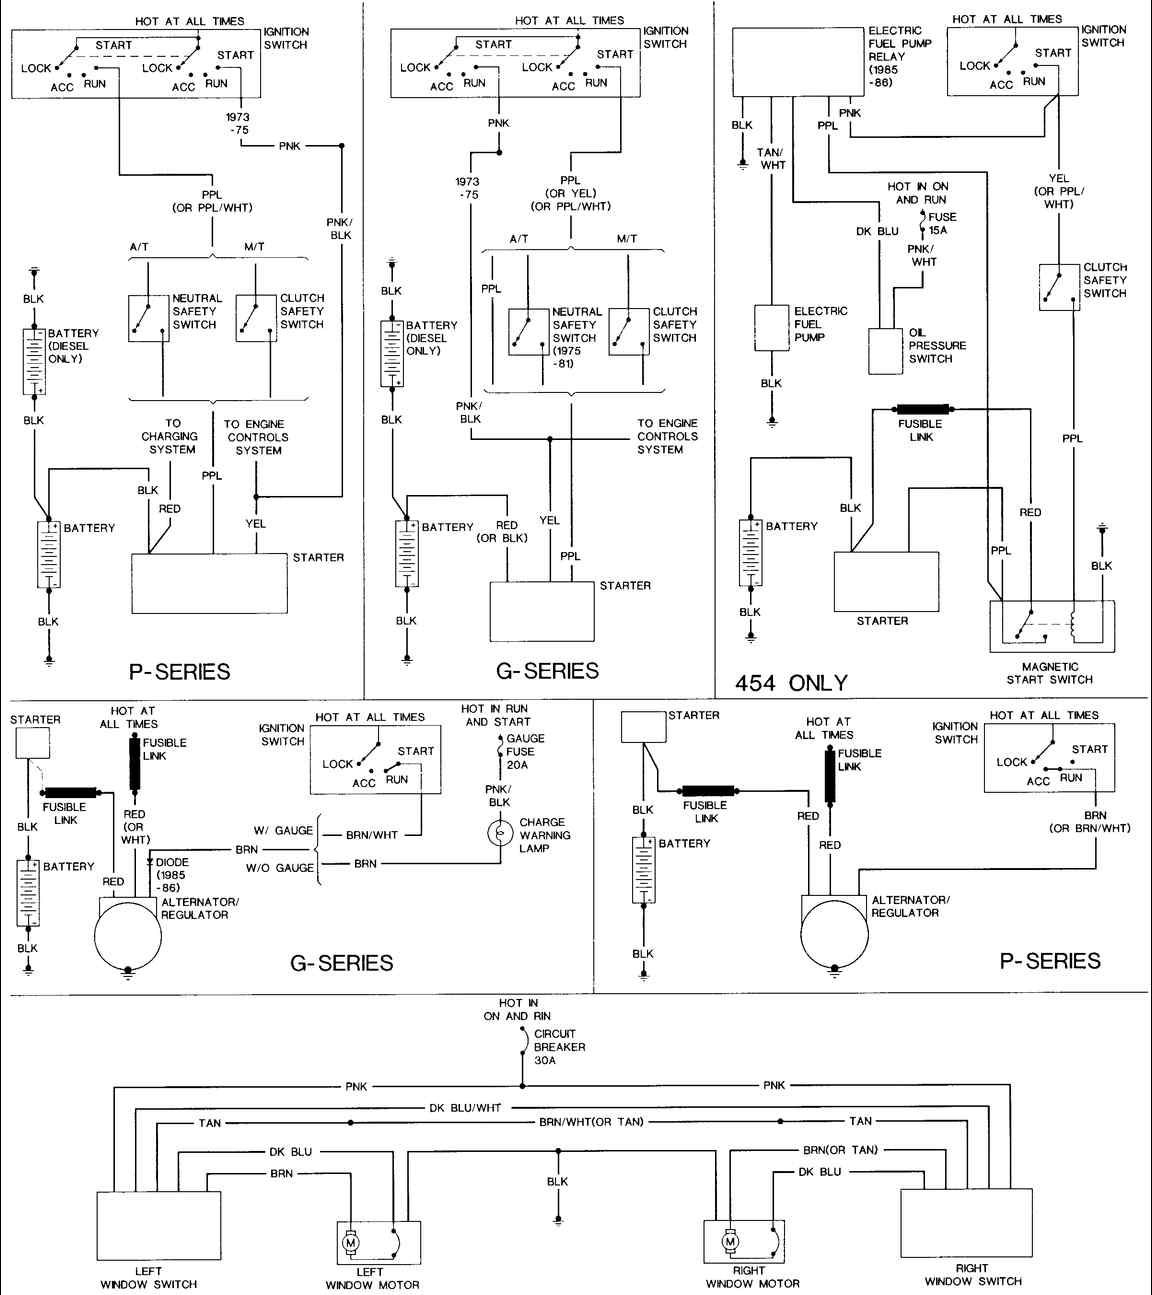 1980 chevy truck wiring diagram images gallery [ 1152 x 1295 Pixel ]